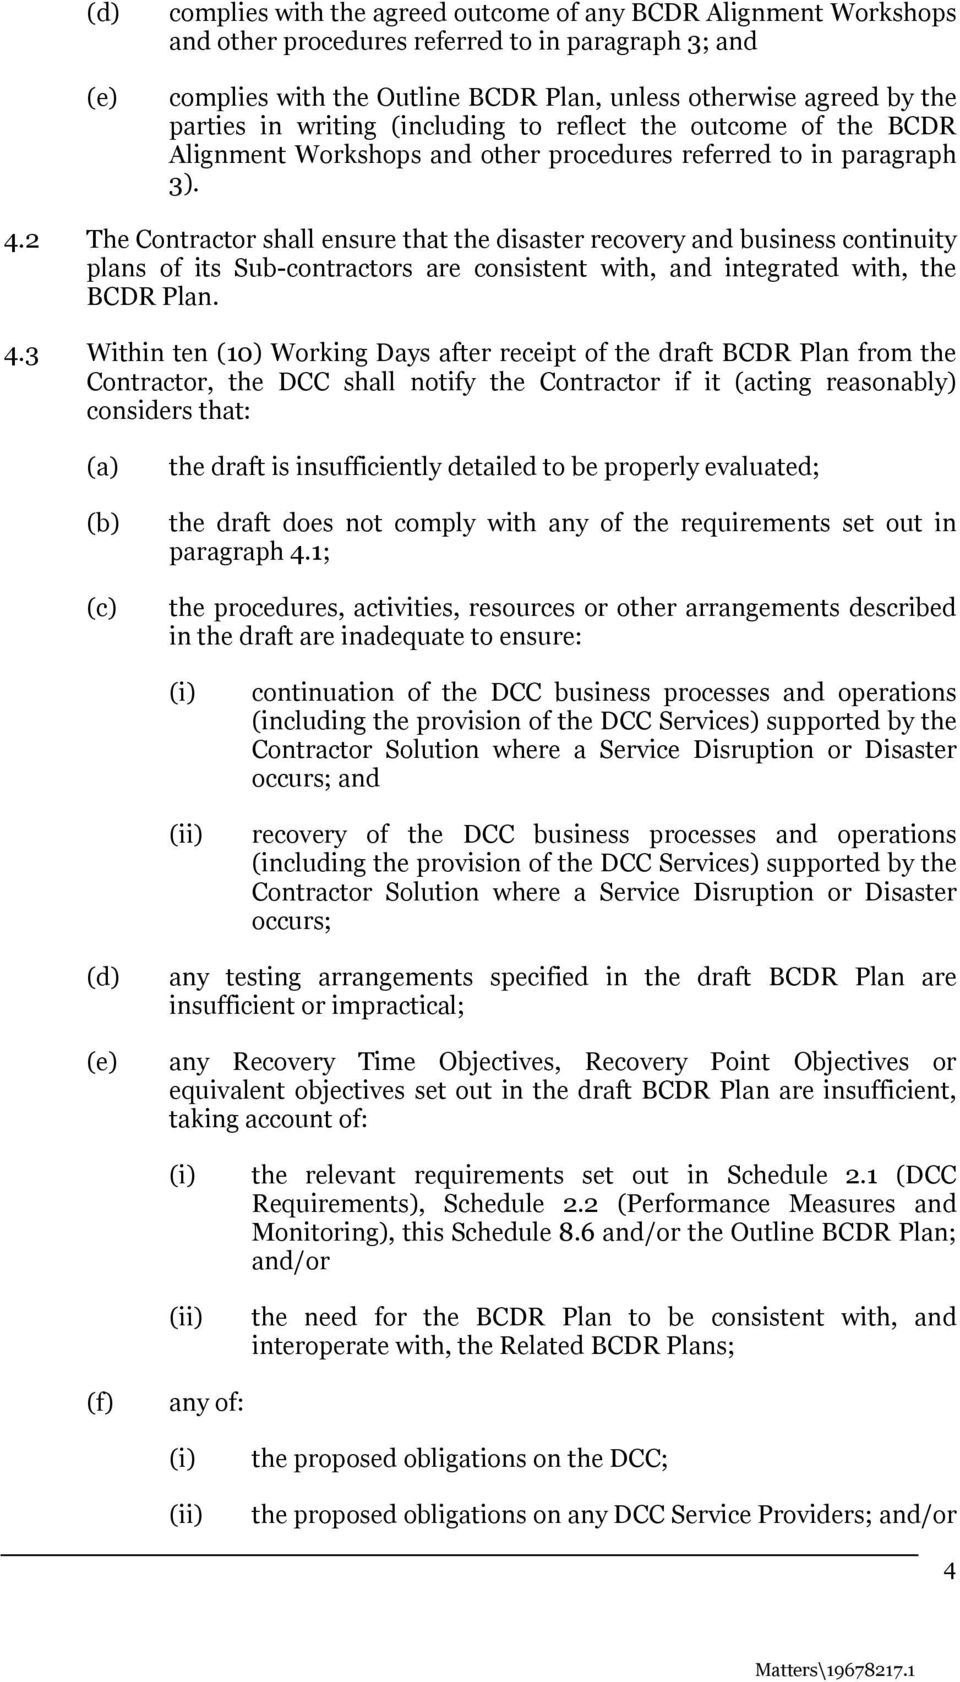 2 The Contractor shall ensure that the disaster recovery and business continuity plans of its Sub-contractors are consistent with, and integrated with, the BCDR Plan. 4.